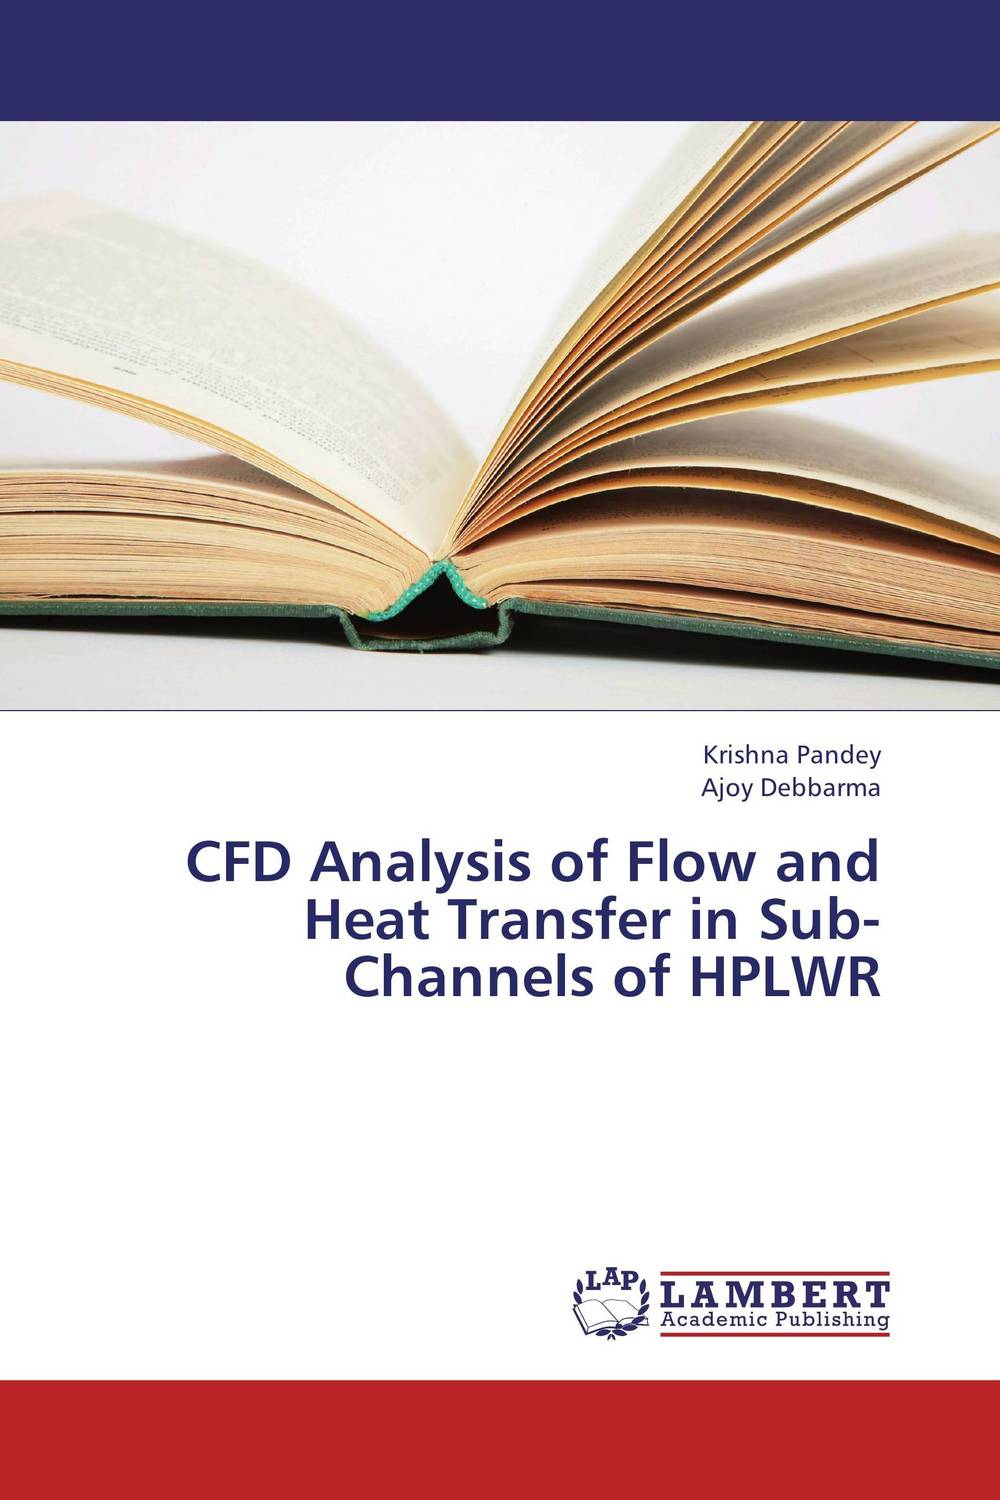 CFD Analysis of Flow and Heat Transfer in Sub-Channels of HPLWR nitul kalita and rahul dev misra cfd analysis of room air distribution